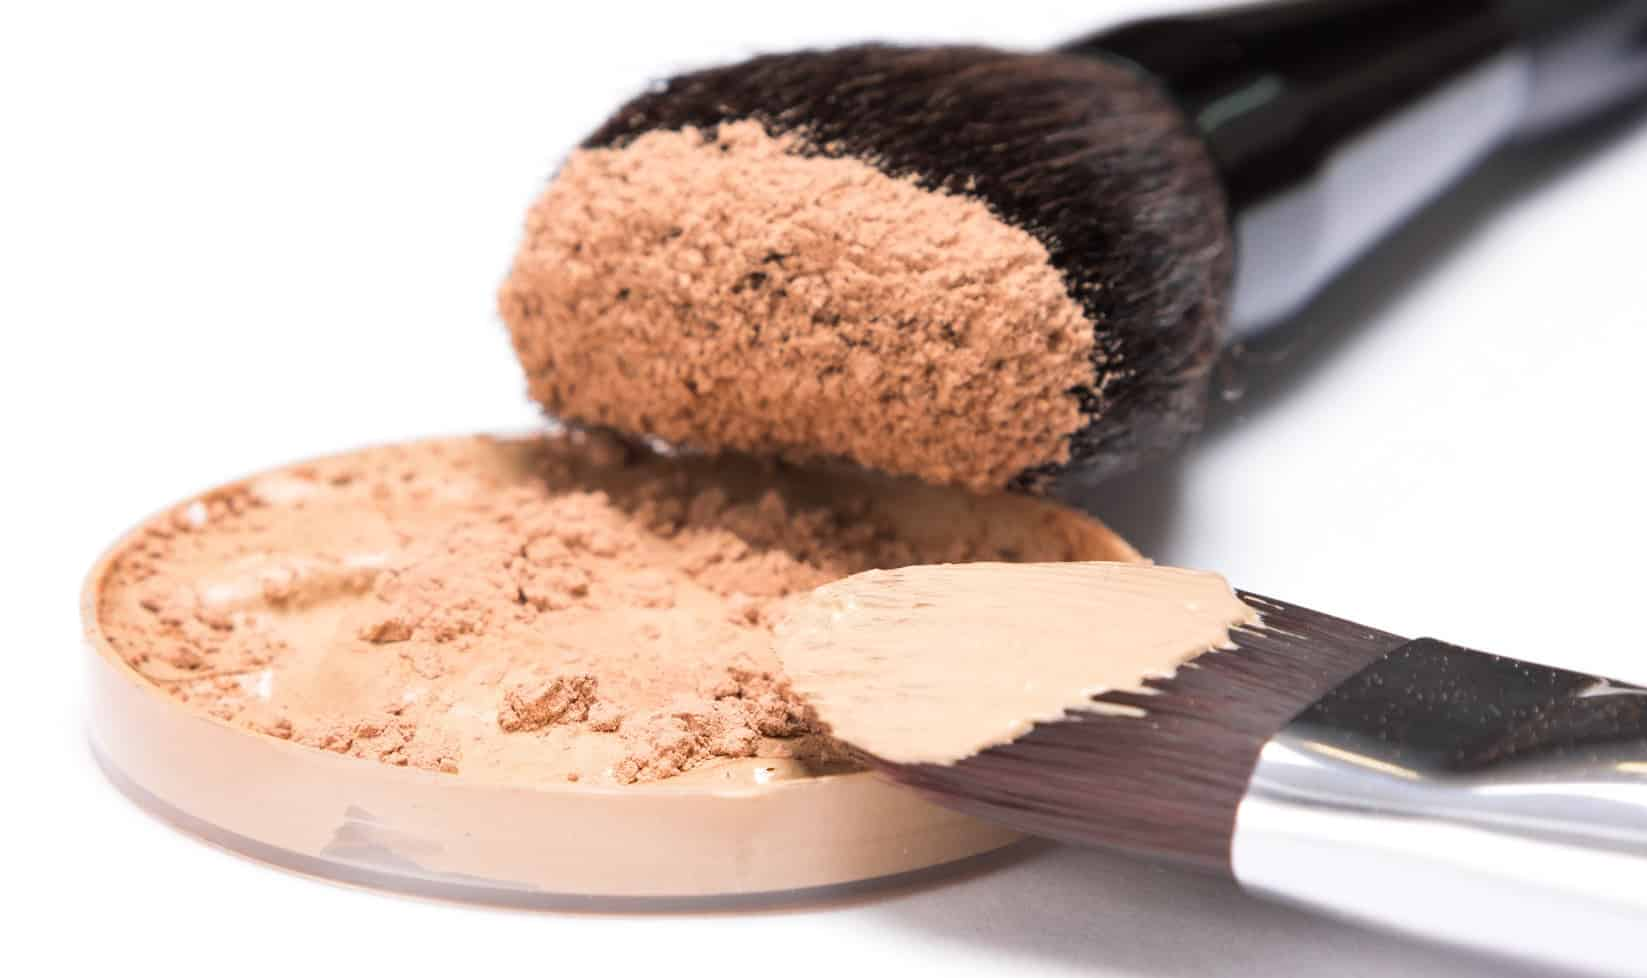 Round container filled with liquid foundation sprinkled with loose cosmetic powder and professional makeup brushes on white background. Side view, very shallow depth of field